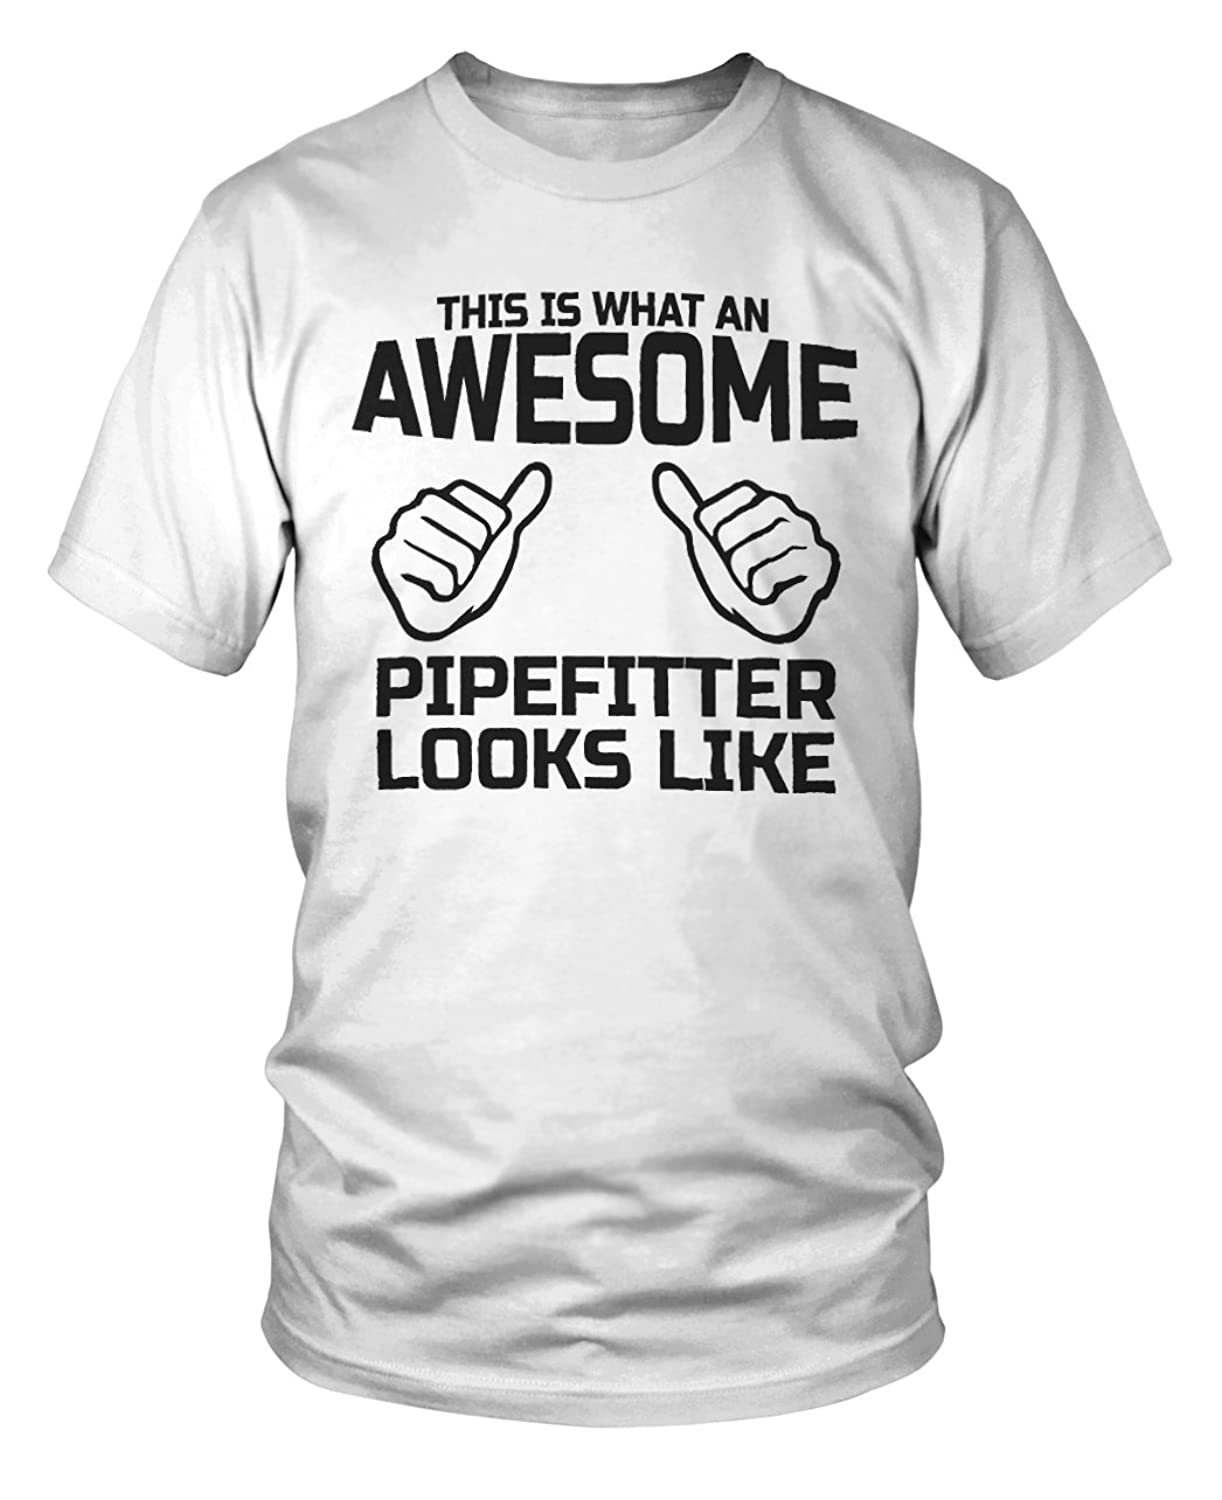 This Is What an Awesome Pipe Fitter Looks Like T-Shirt